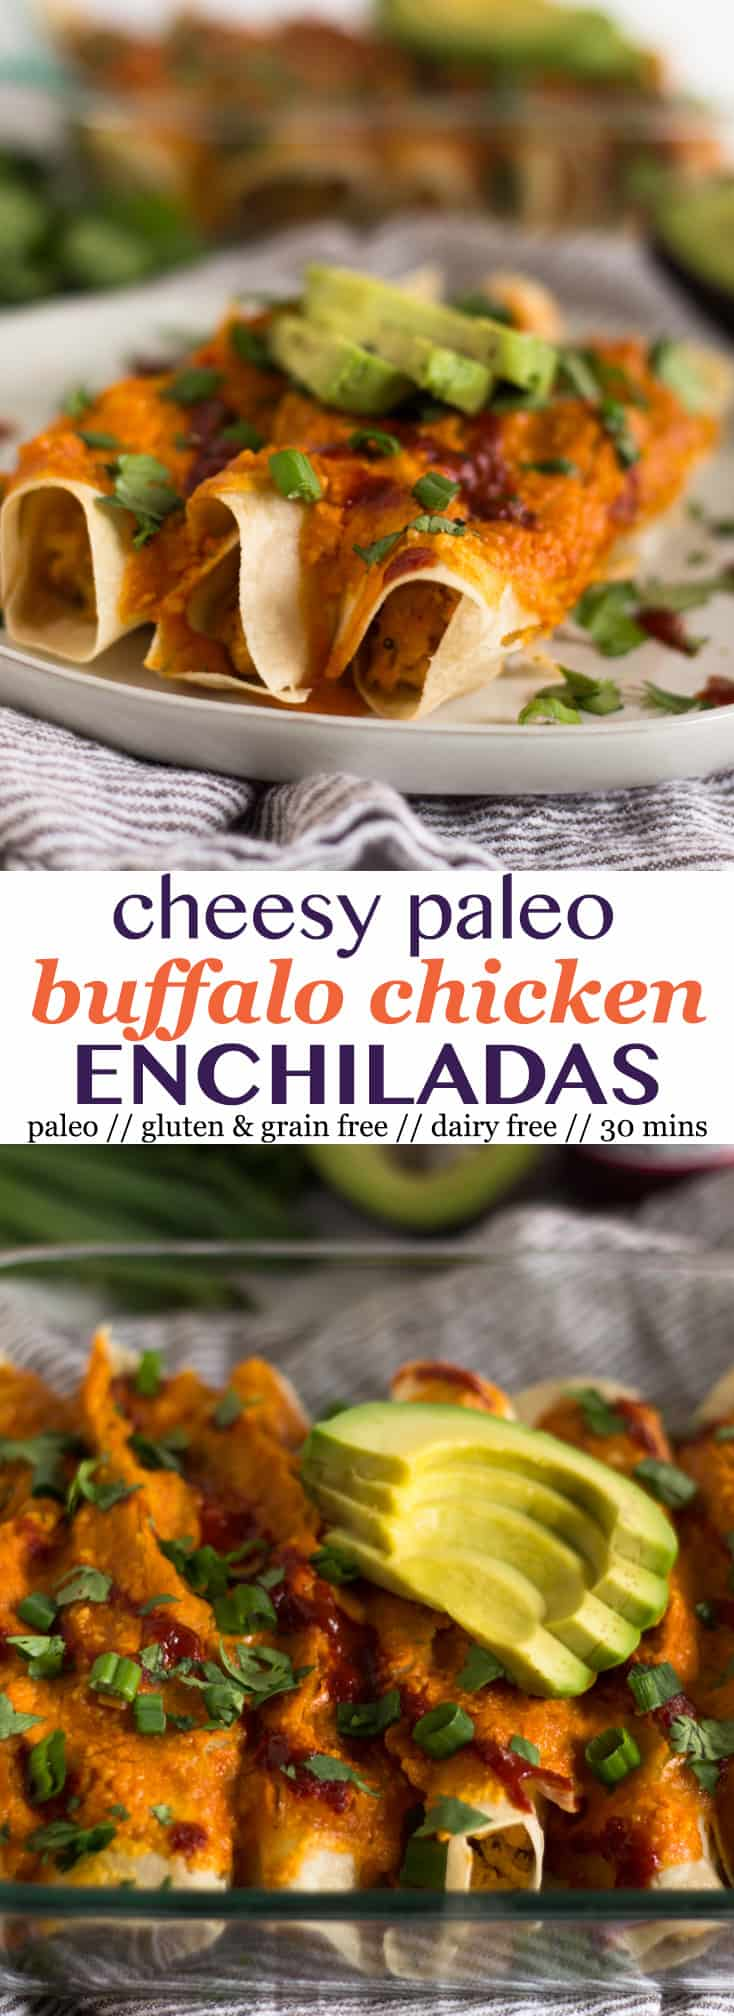 A comforting and healthy spin on enchiladas, these Cheesy Paleo Buffalo Chicken Enchiladas pack the flavor while being gluten, grain, and dairy free! - Eat the Gains